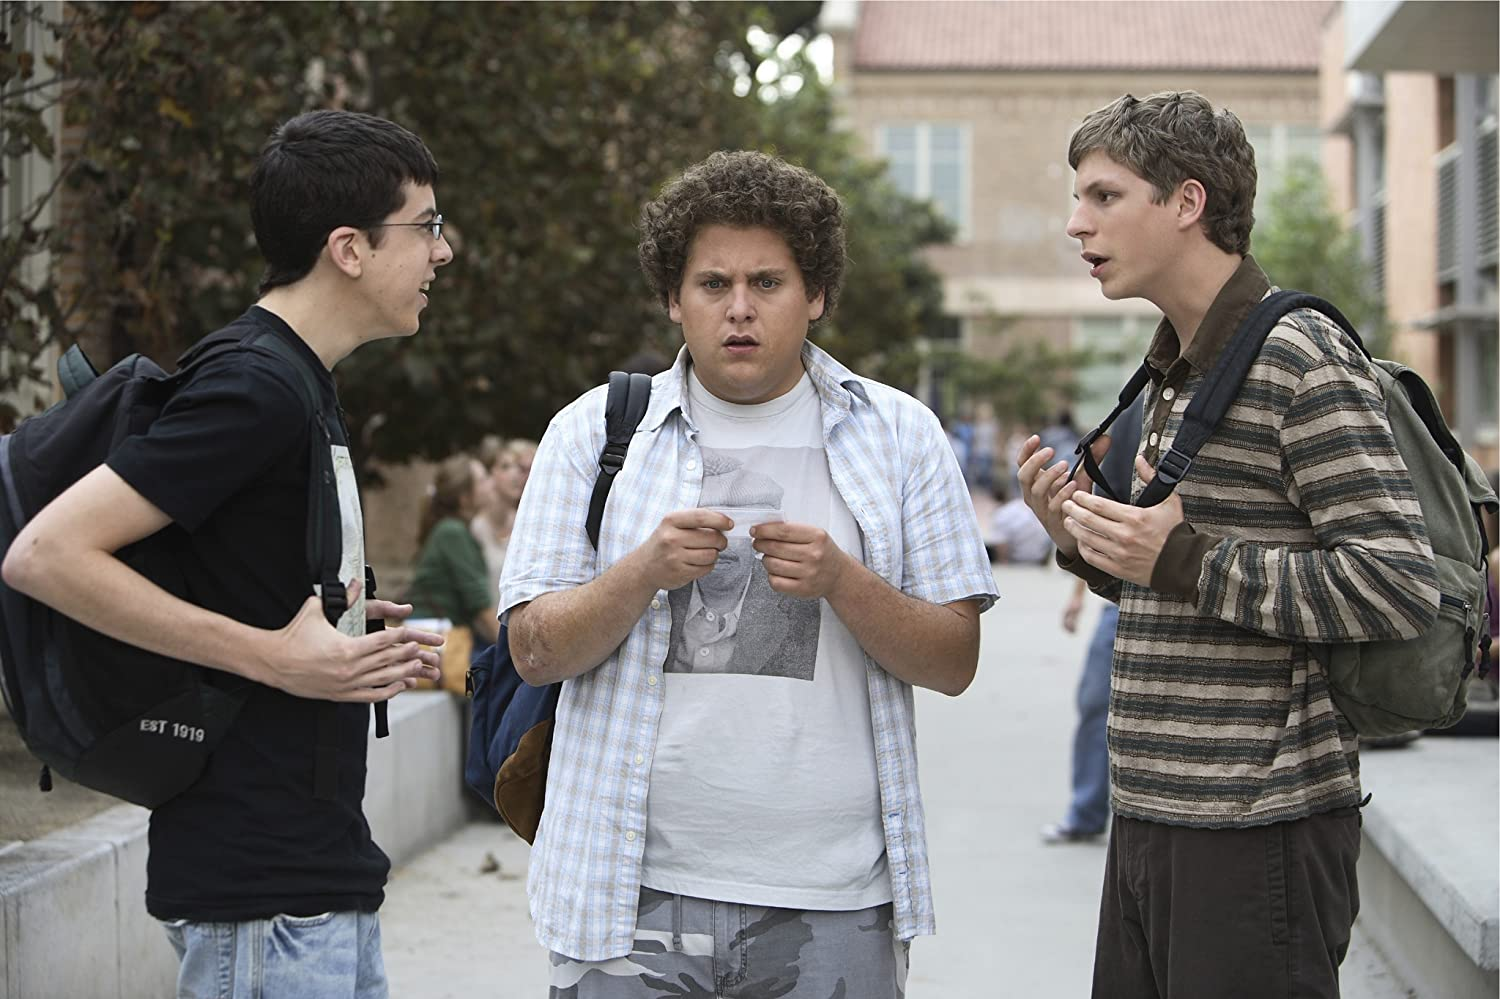 Michael Cera, Jonah Hill, and Christopher Mintz-Plasse in Superbad (2007)